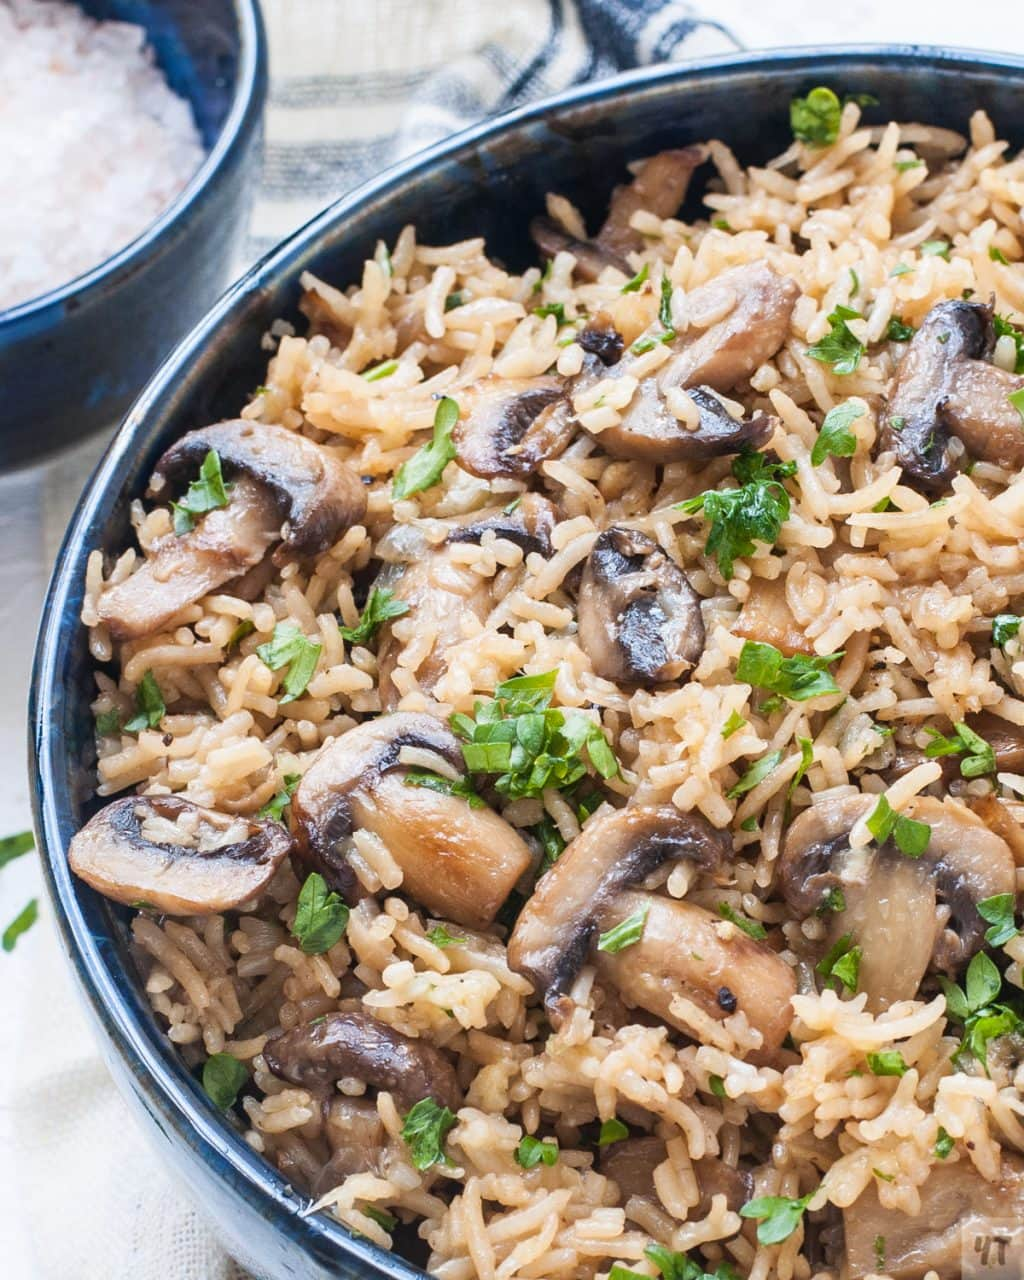 Mushroom Parmesan Rice- Buttery Cheesy Parmesan rice with caramalised mushrooms,garlic and parsley made in pressure cooker within 30 minutes. #mushroom #instantpot #parmesanrice #rice #mushroomrice #recipe #vegetarian #pressurecookerrice